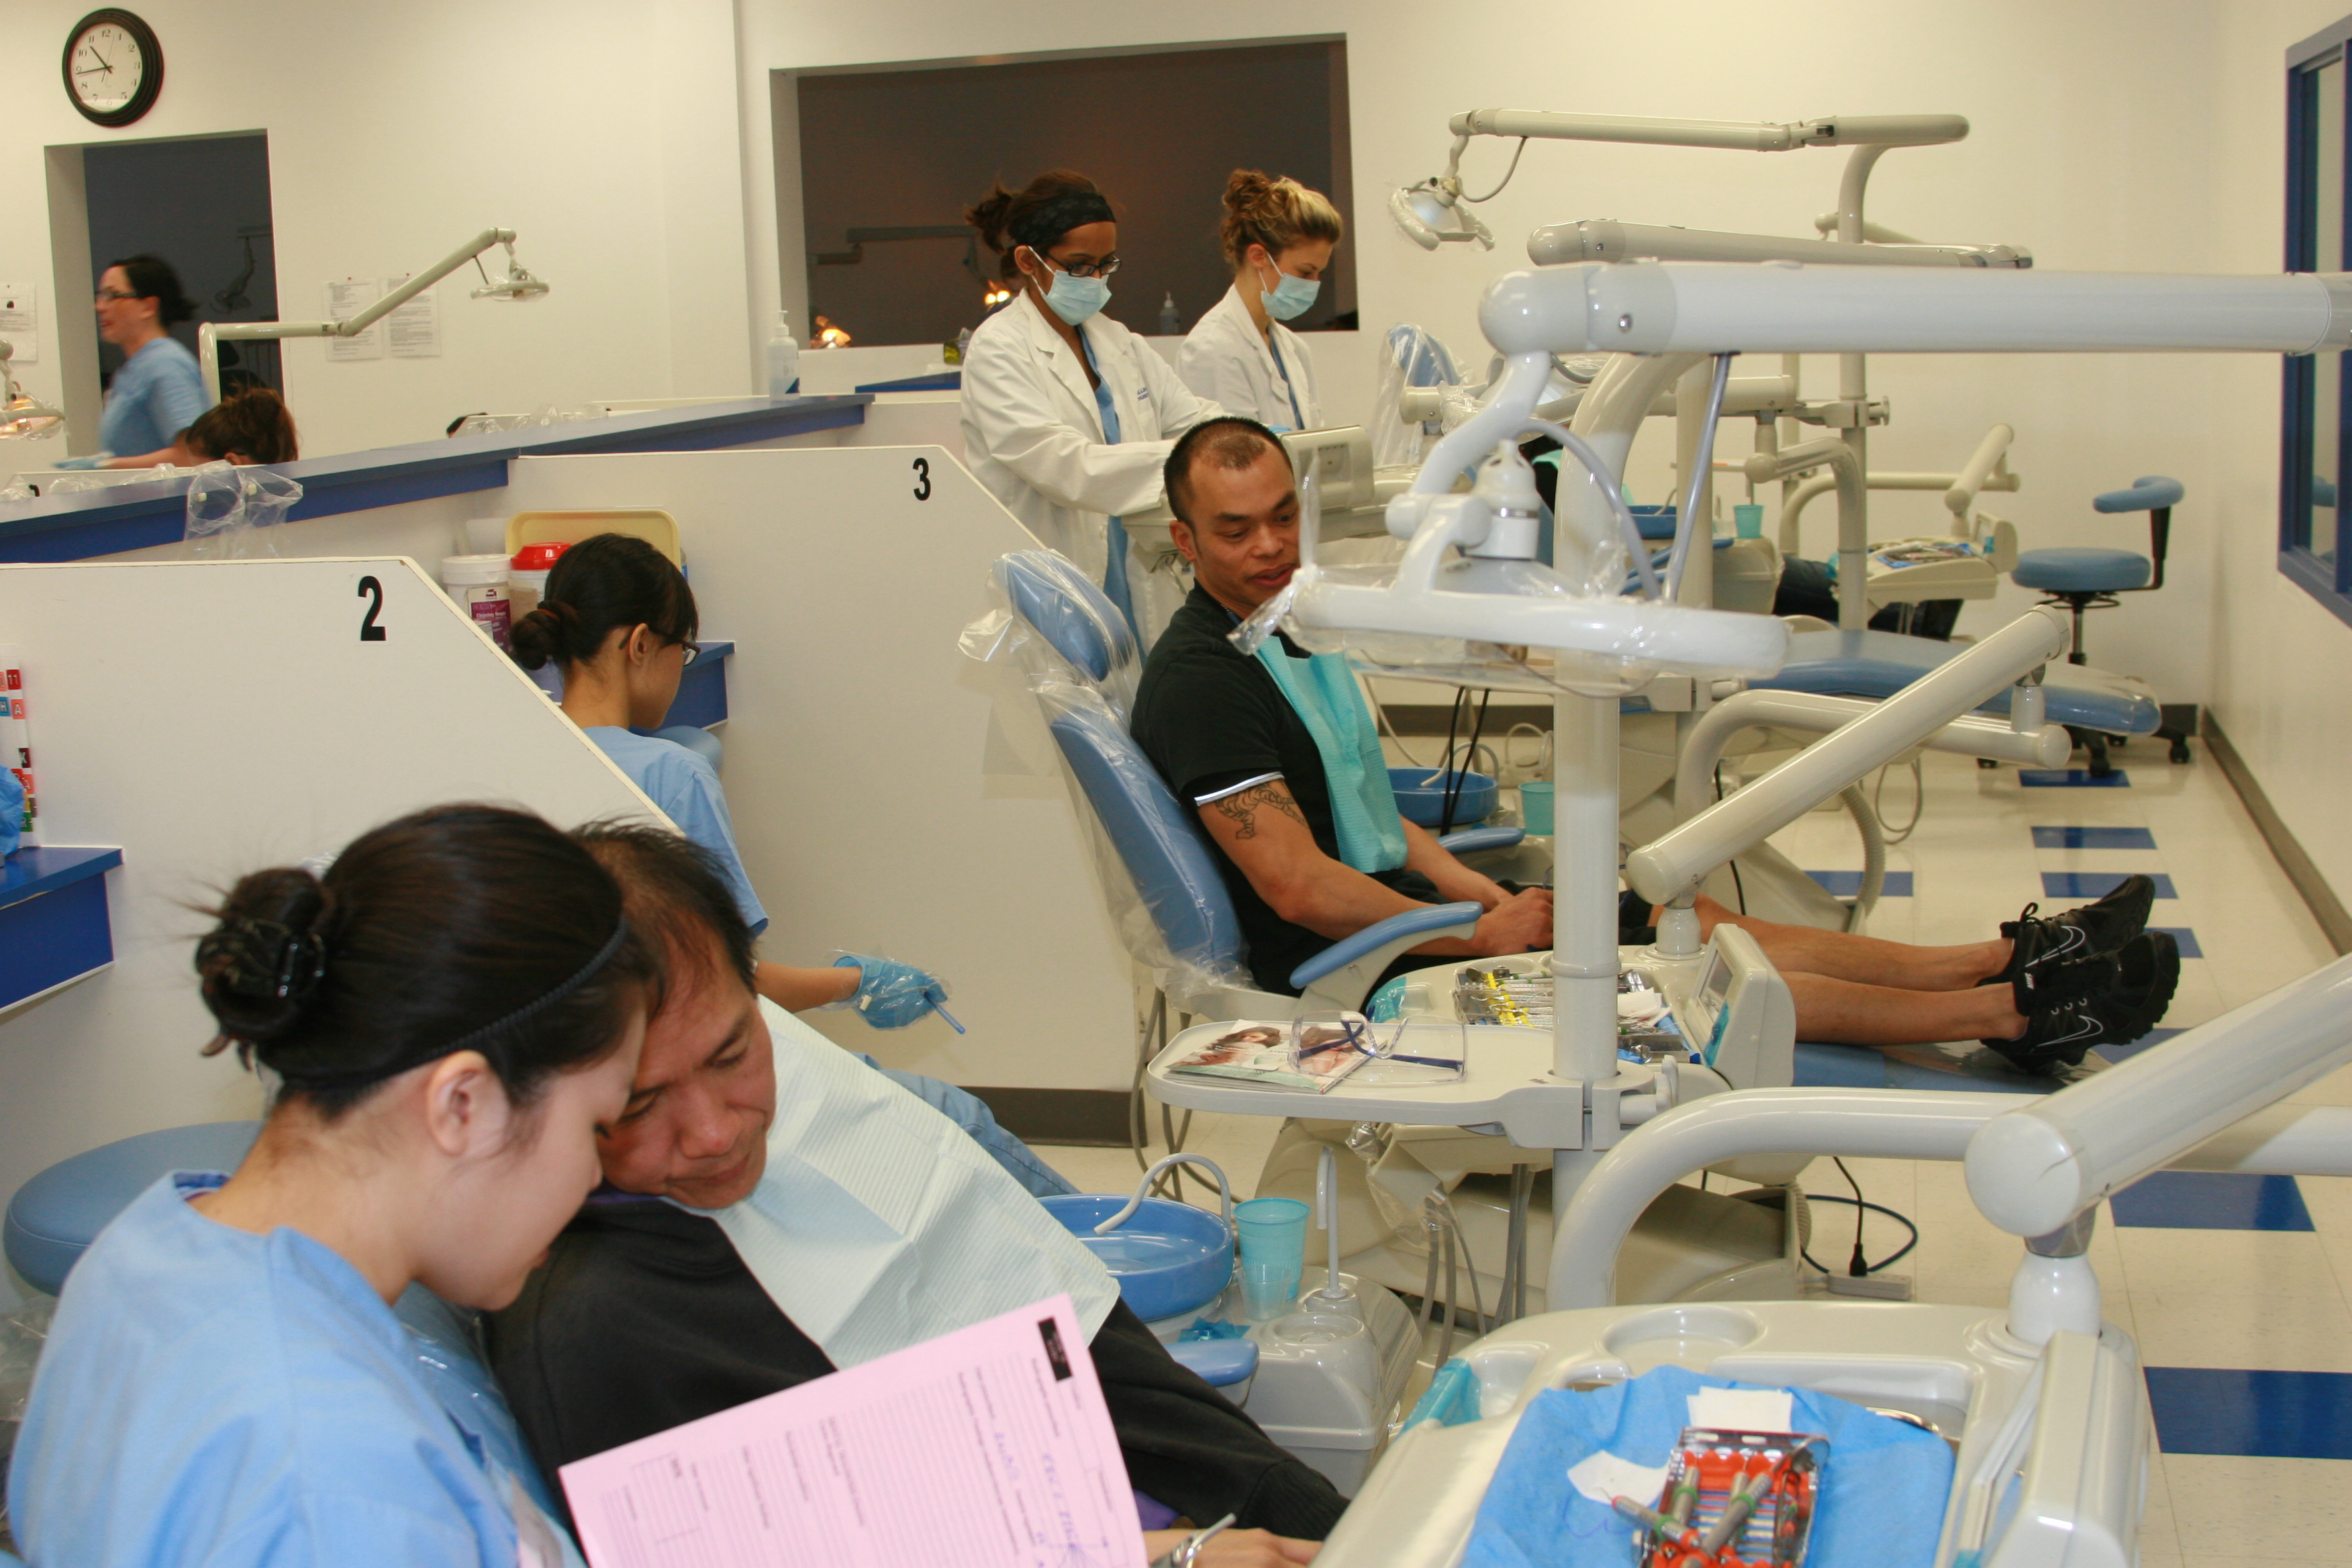 Dental Hygienist subjects in universities